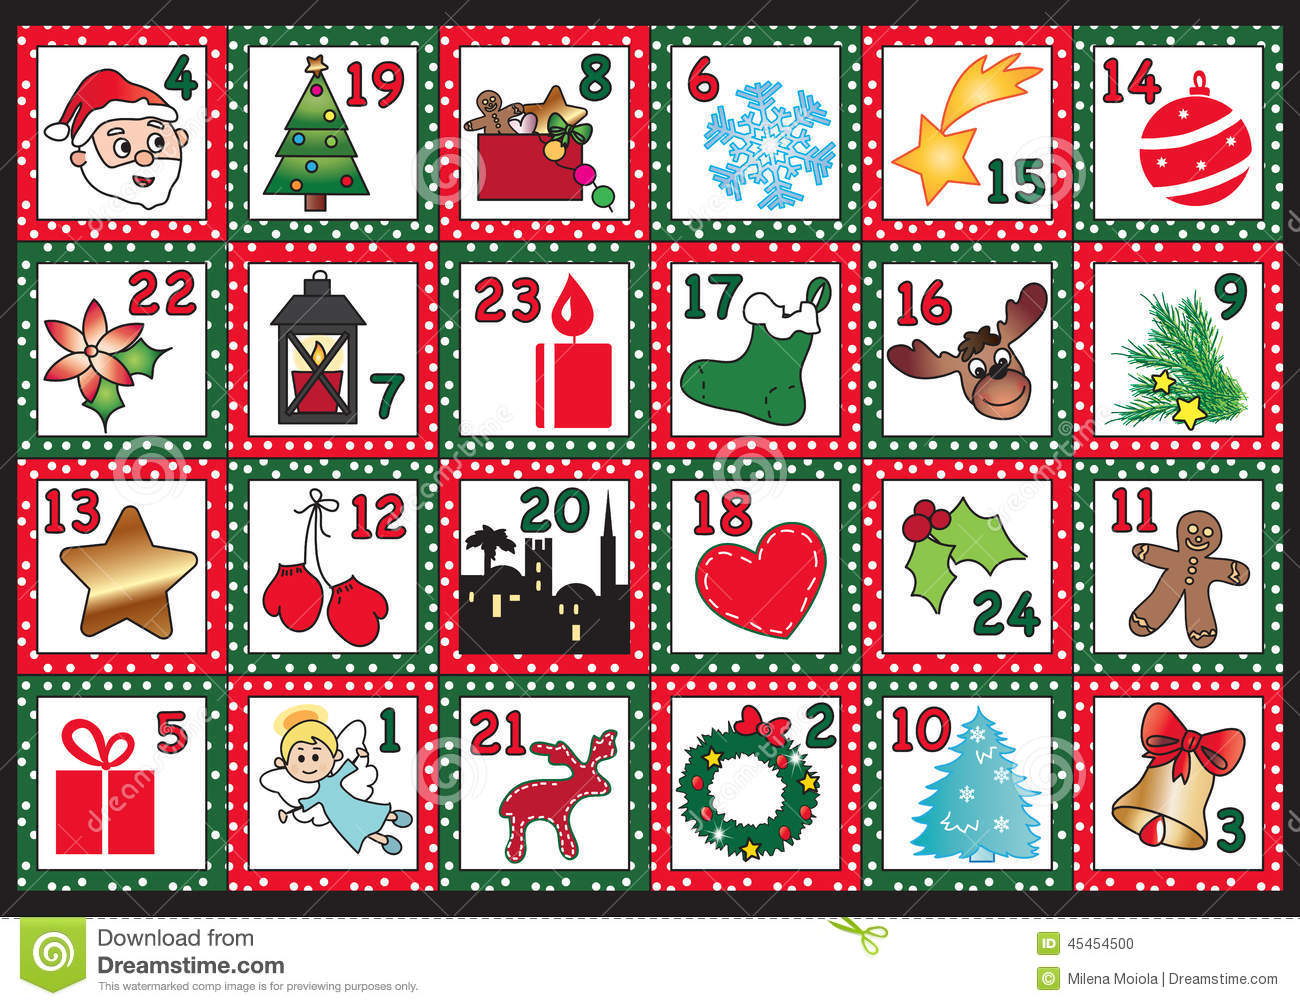 Christmas Calendar Pictures : Advent calendar stock illustration image of comet kids